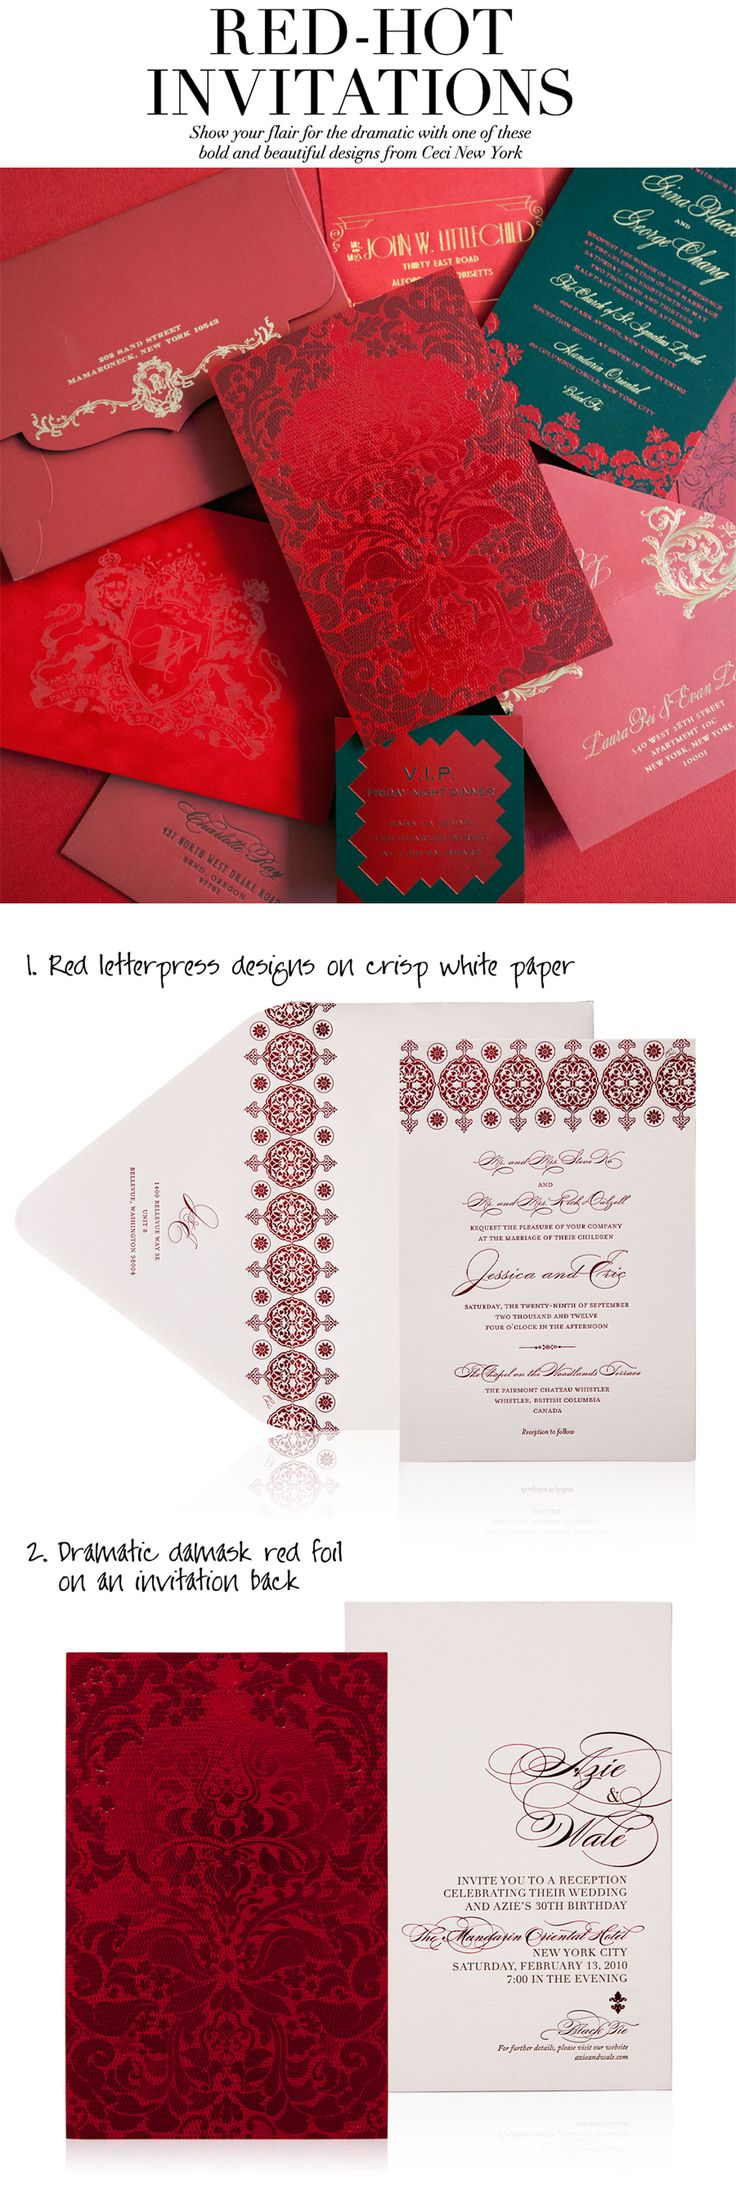 134 best Ceci Creative Tips images on Pinterest | Bridal invitations ...